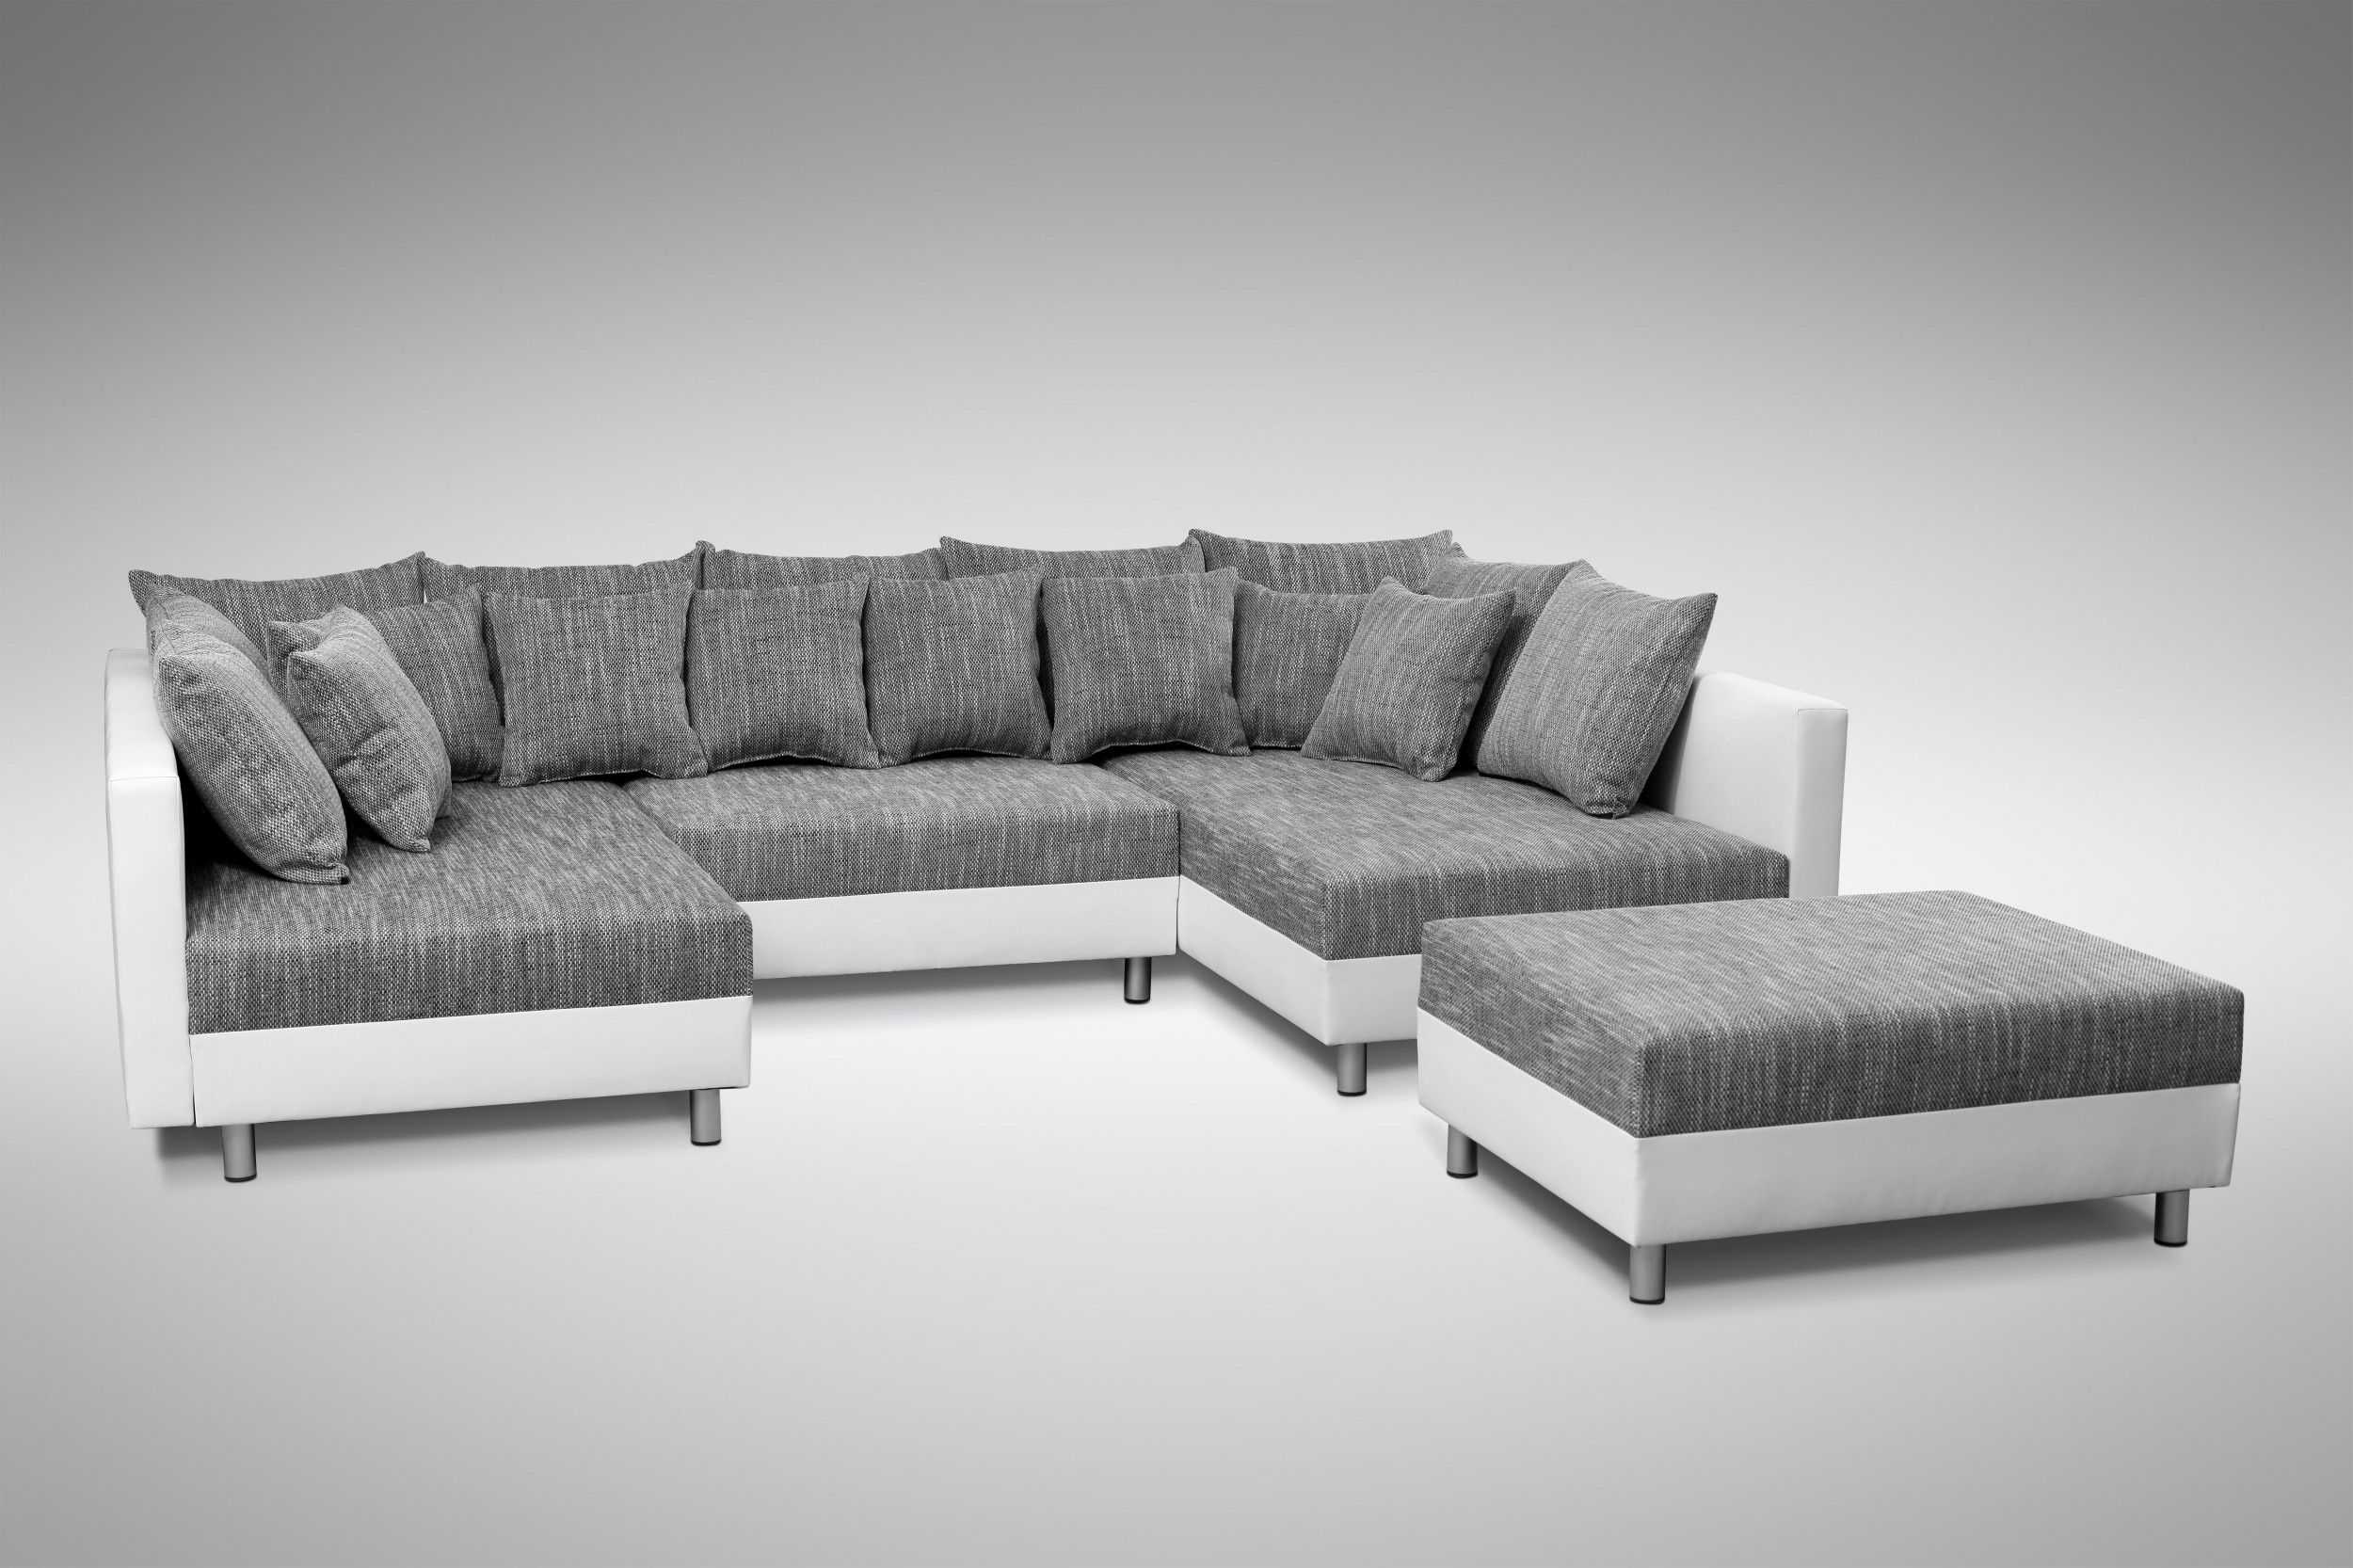 Sofa couch ecksofa eckcouch in weiss hellgrau eckcouch for Eckcouch mit hocker